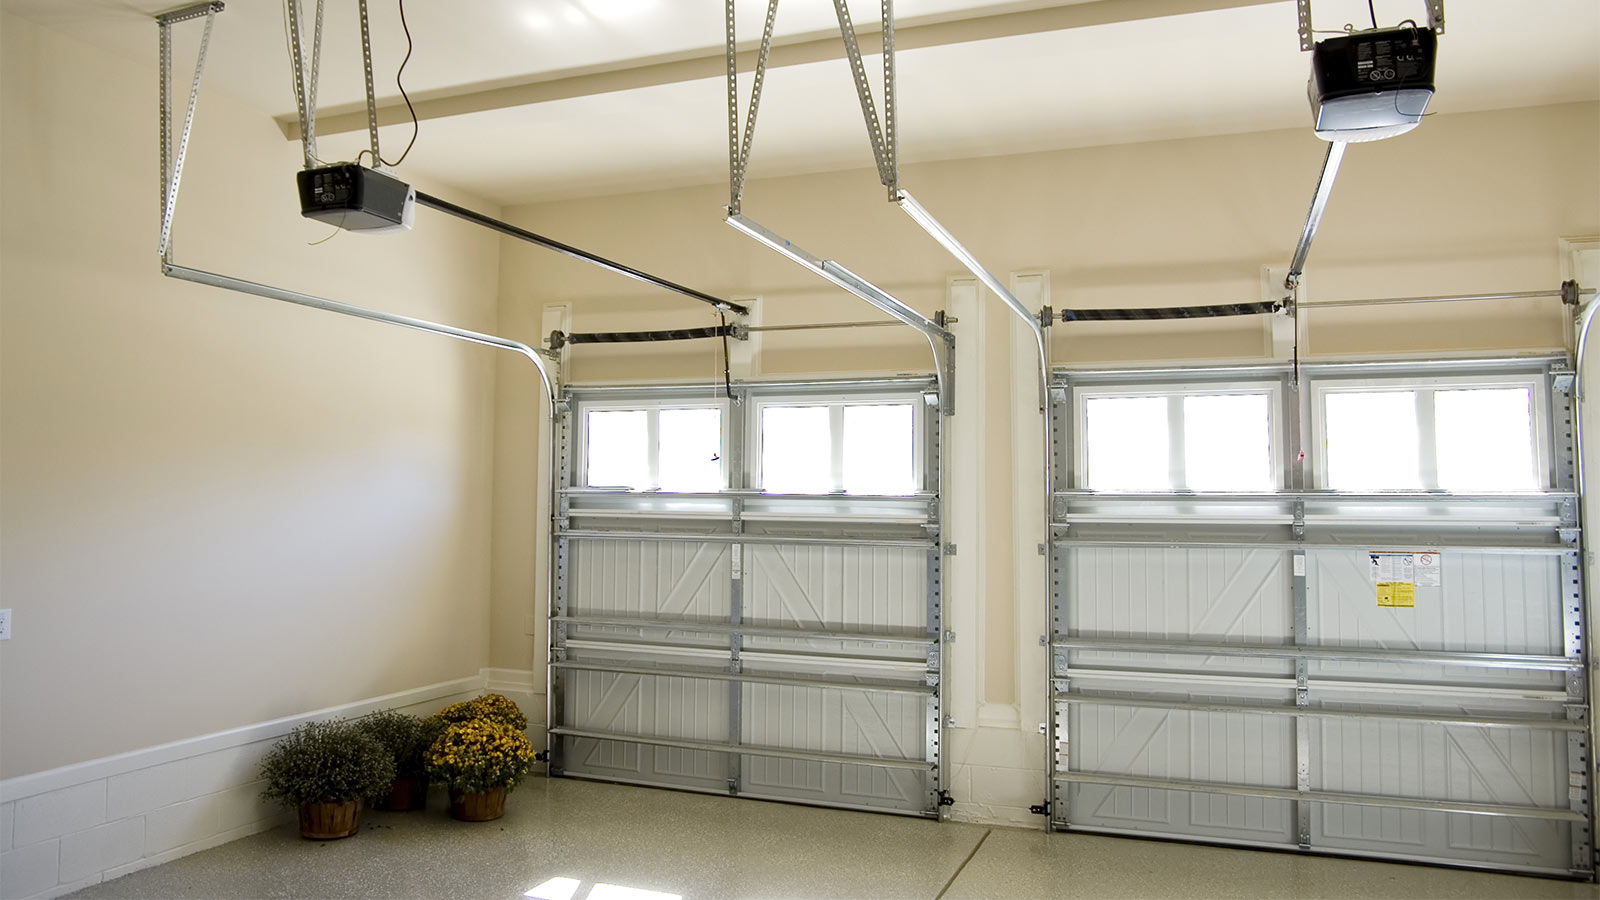 Sectional Garage Doors from Electric Roller Garage Doors Brentwood suppliers.